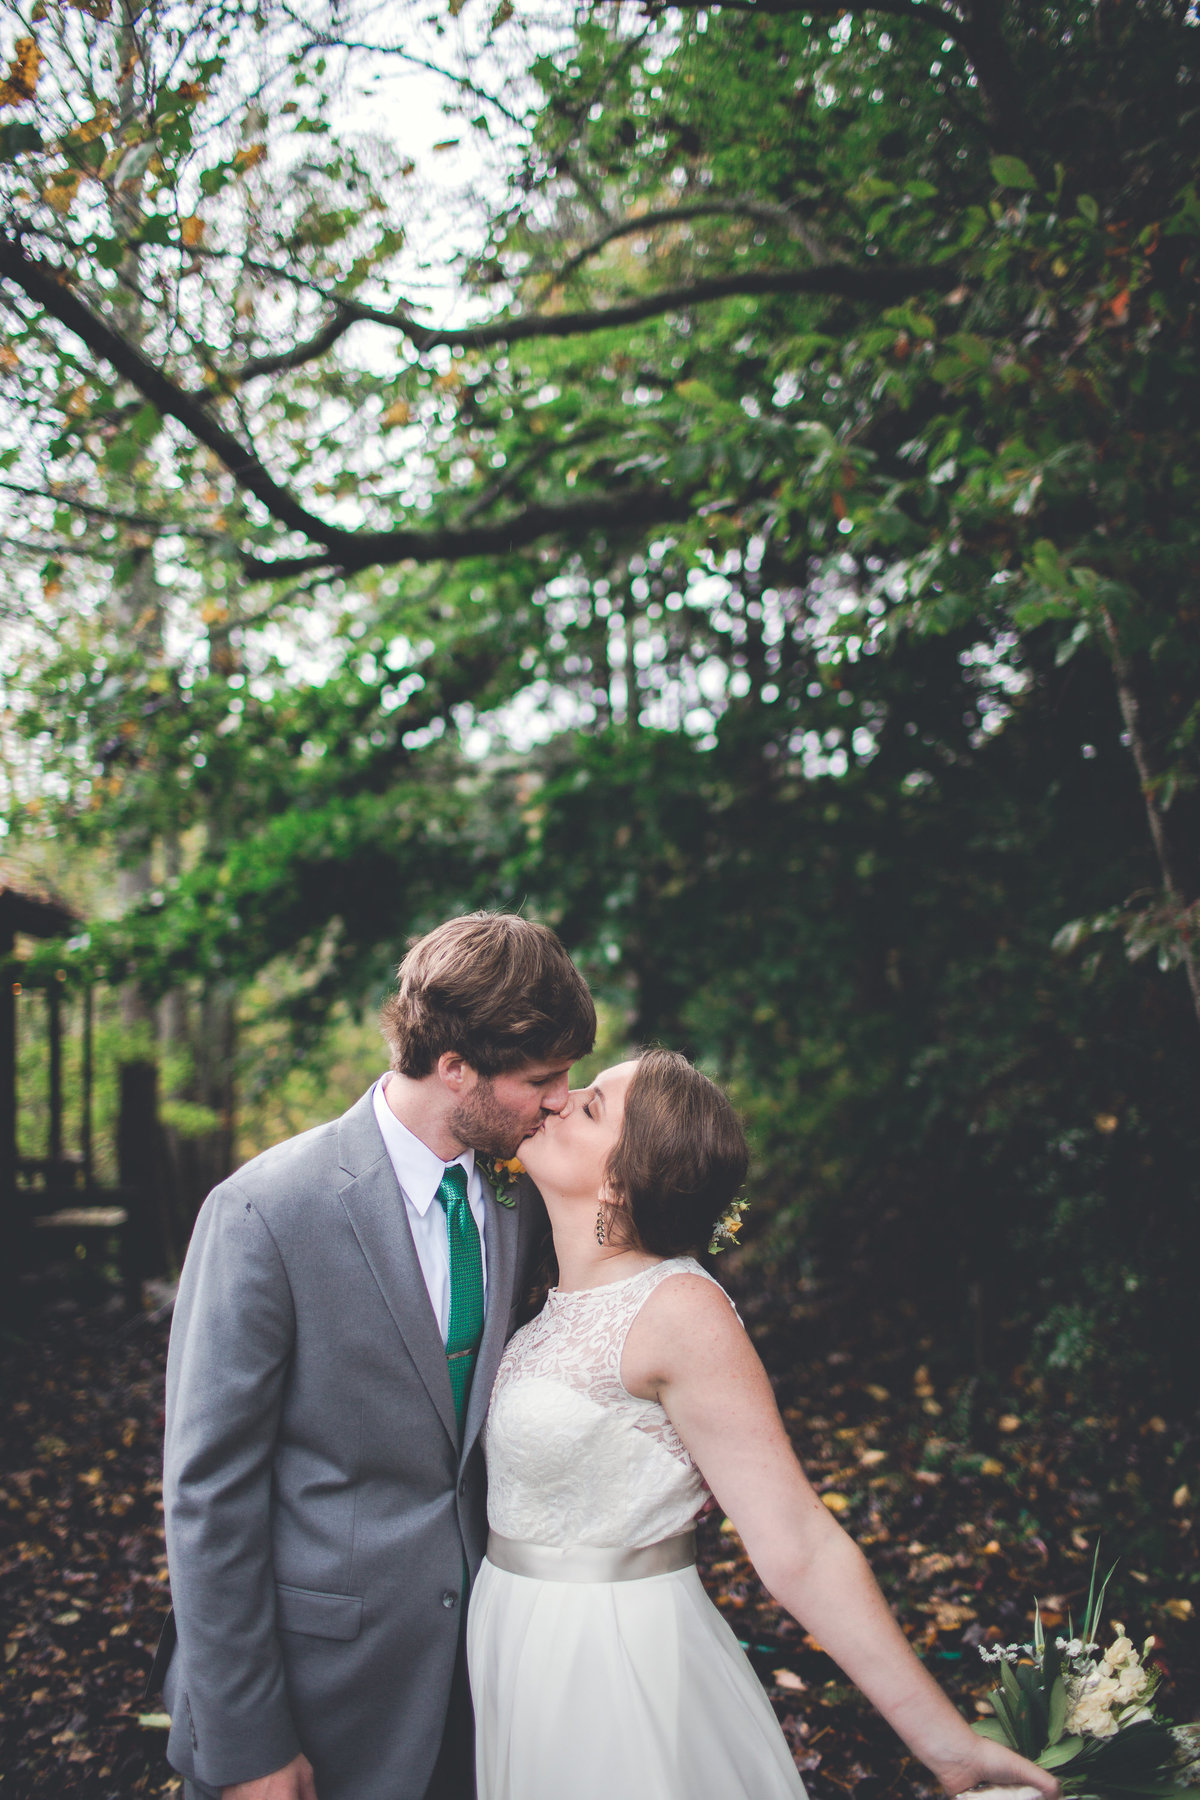 ashevilledestinationweddingphotographer_Biltmore_lifestyle_BrenPhotography_403